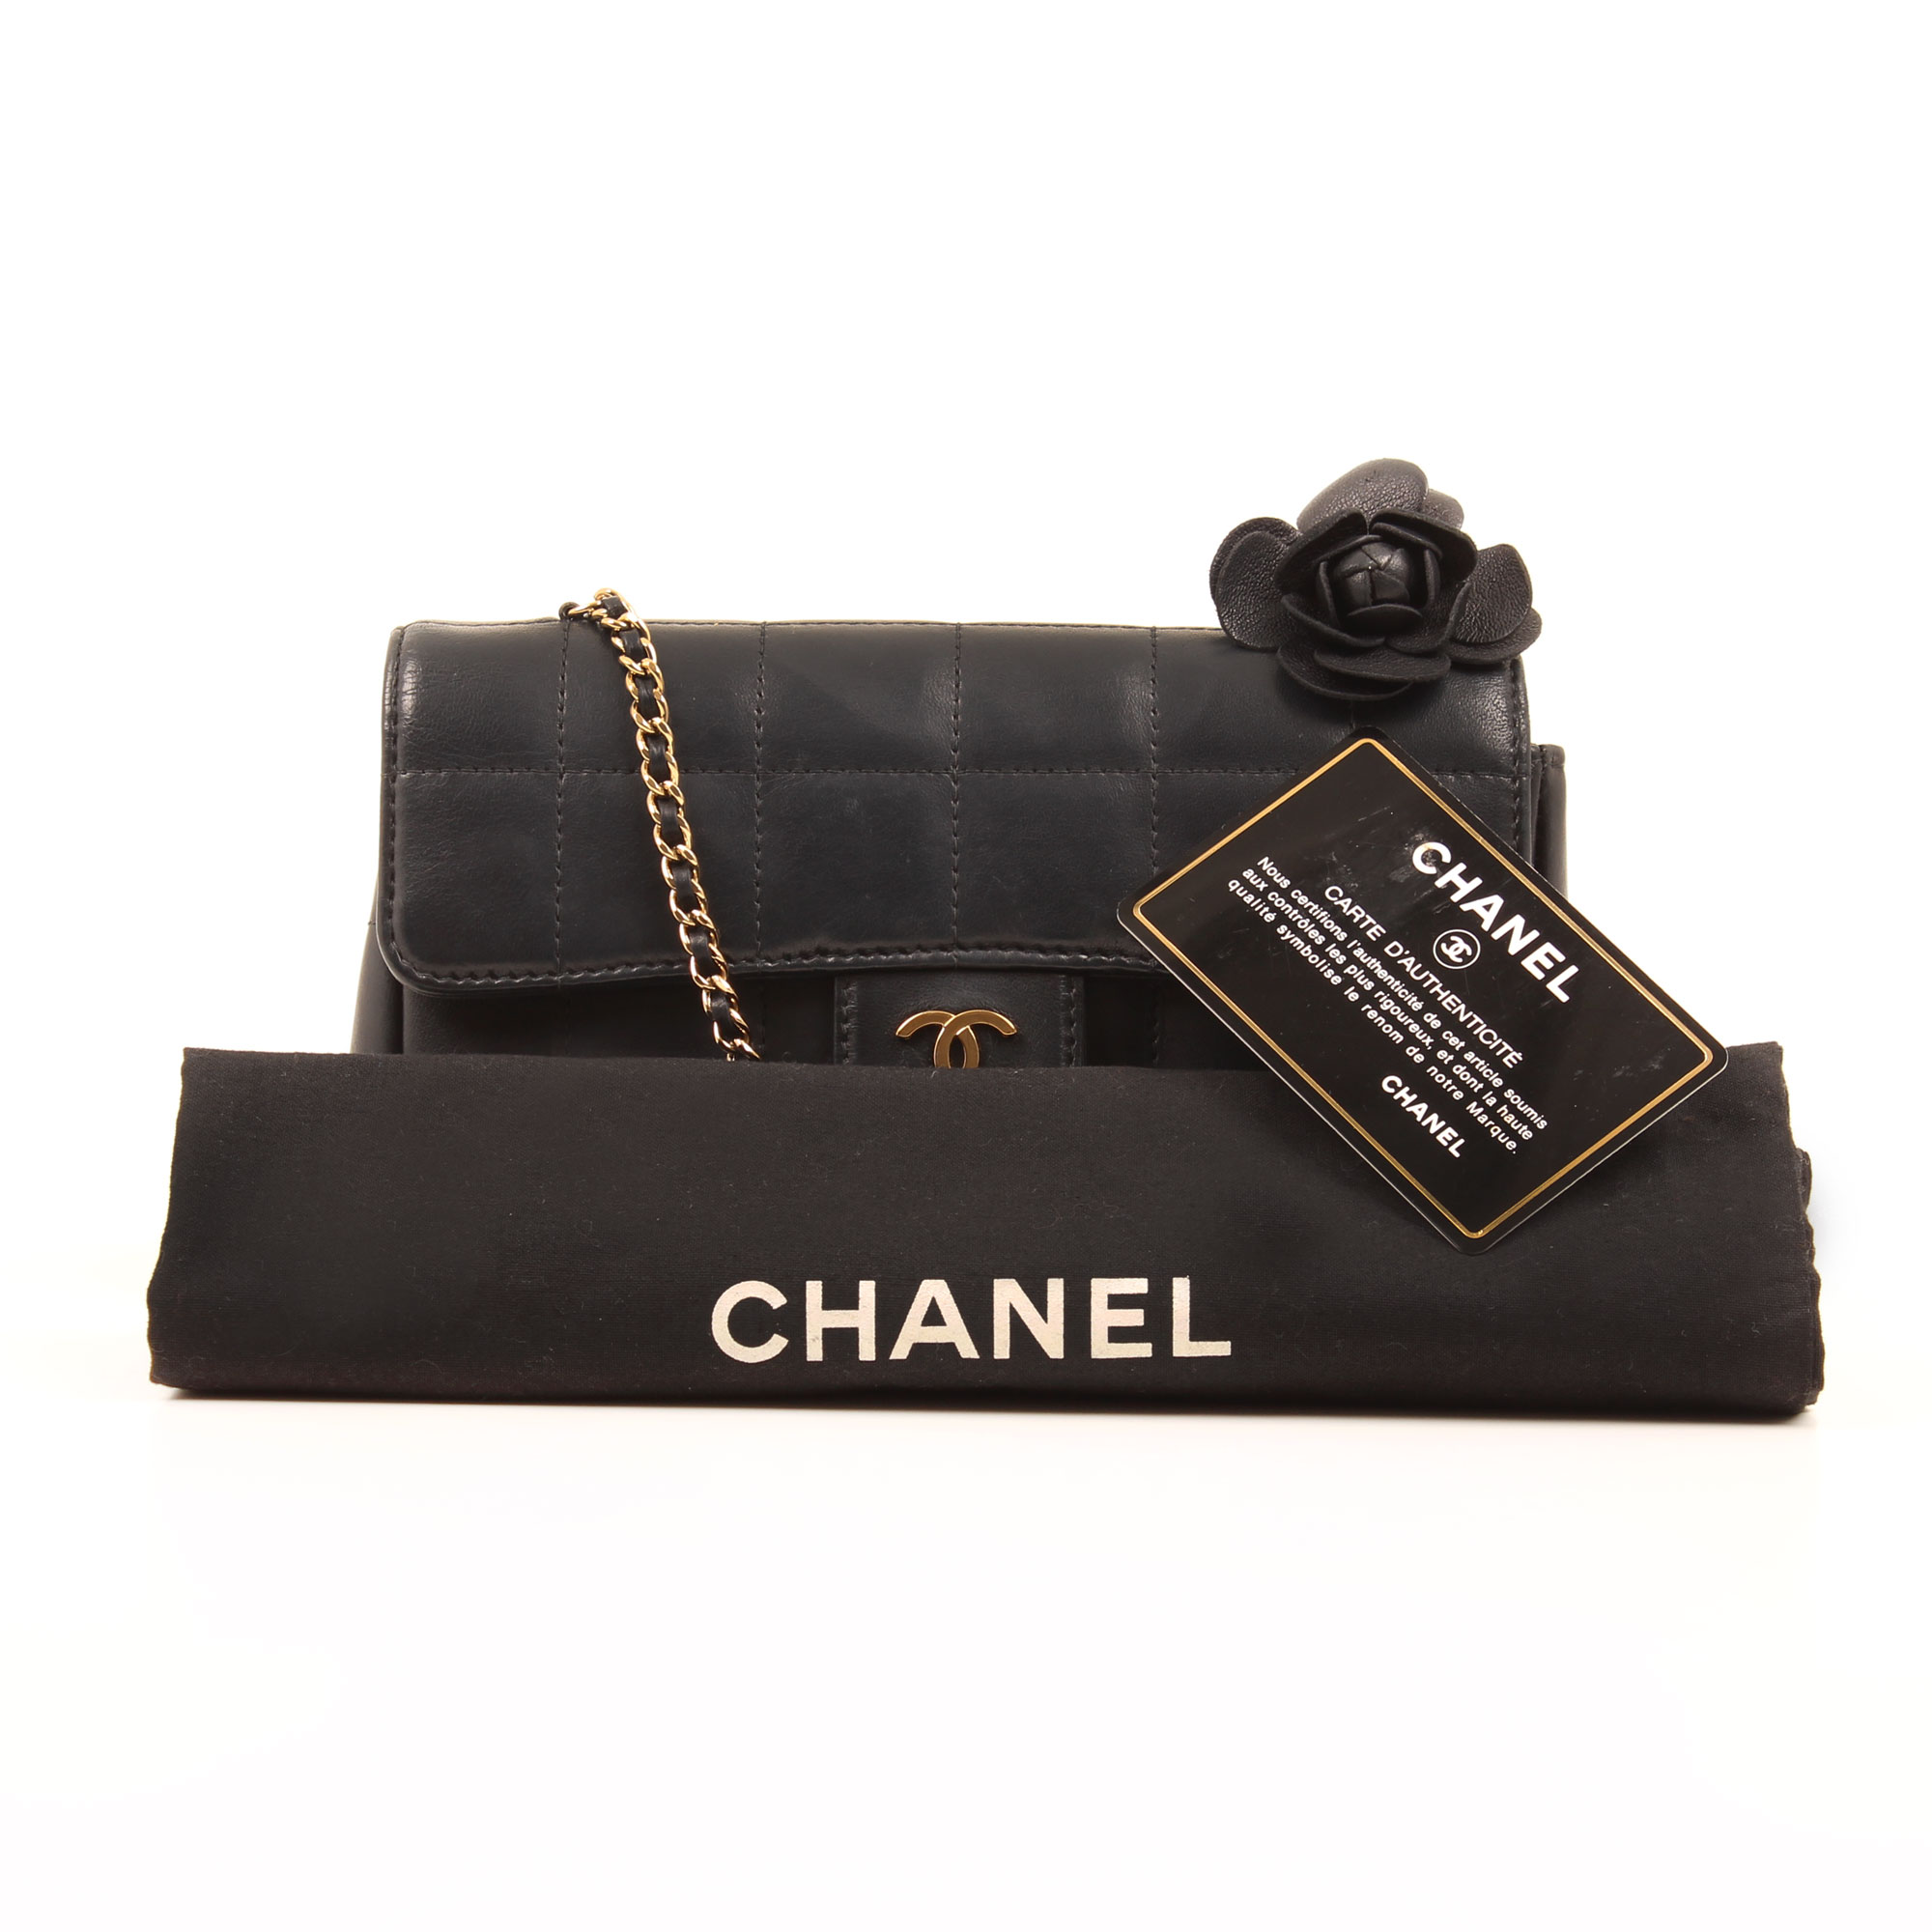 Imagen de los extras del bolso chanel mini crossbody chocolate bar navy blue camelia